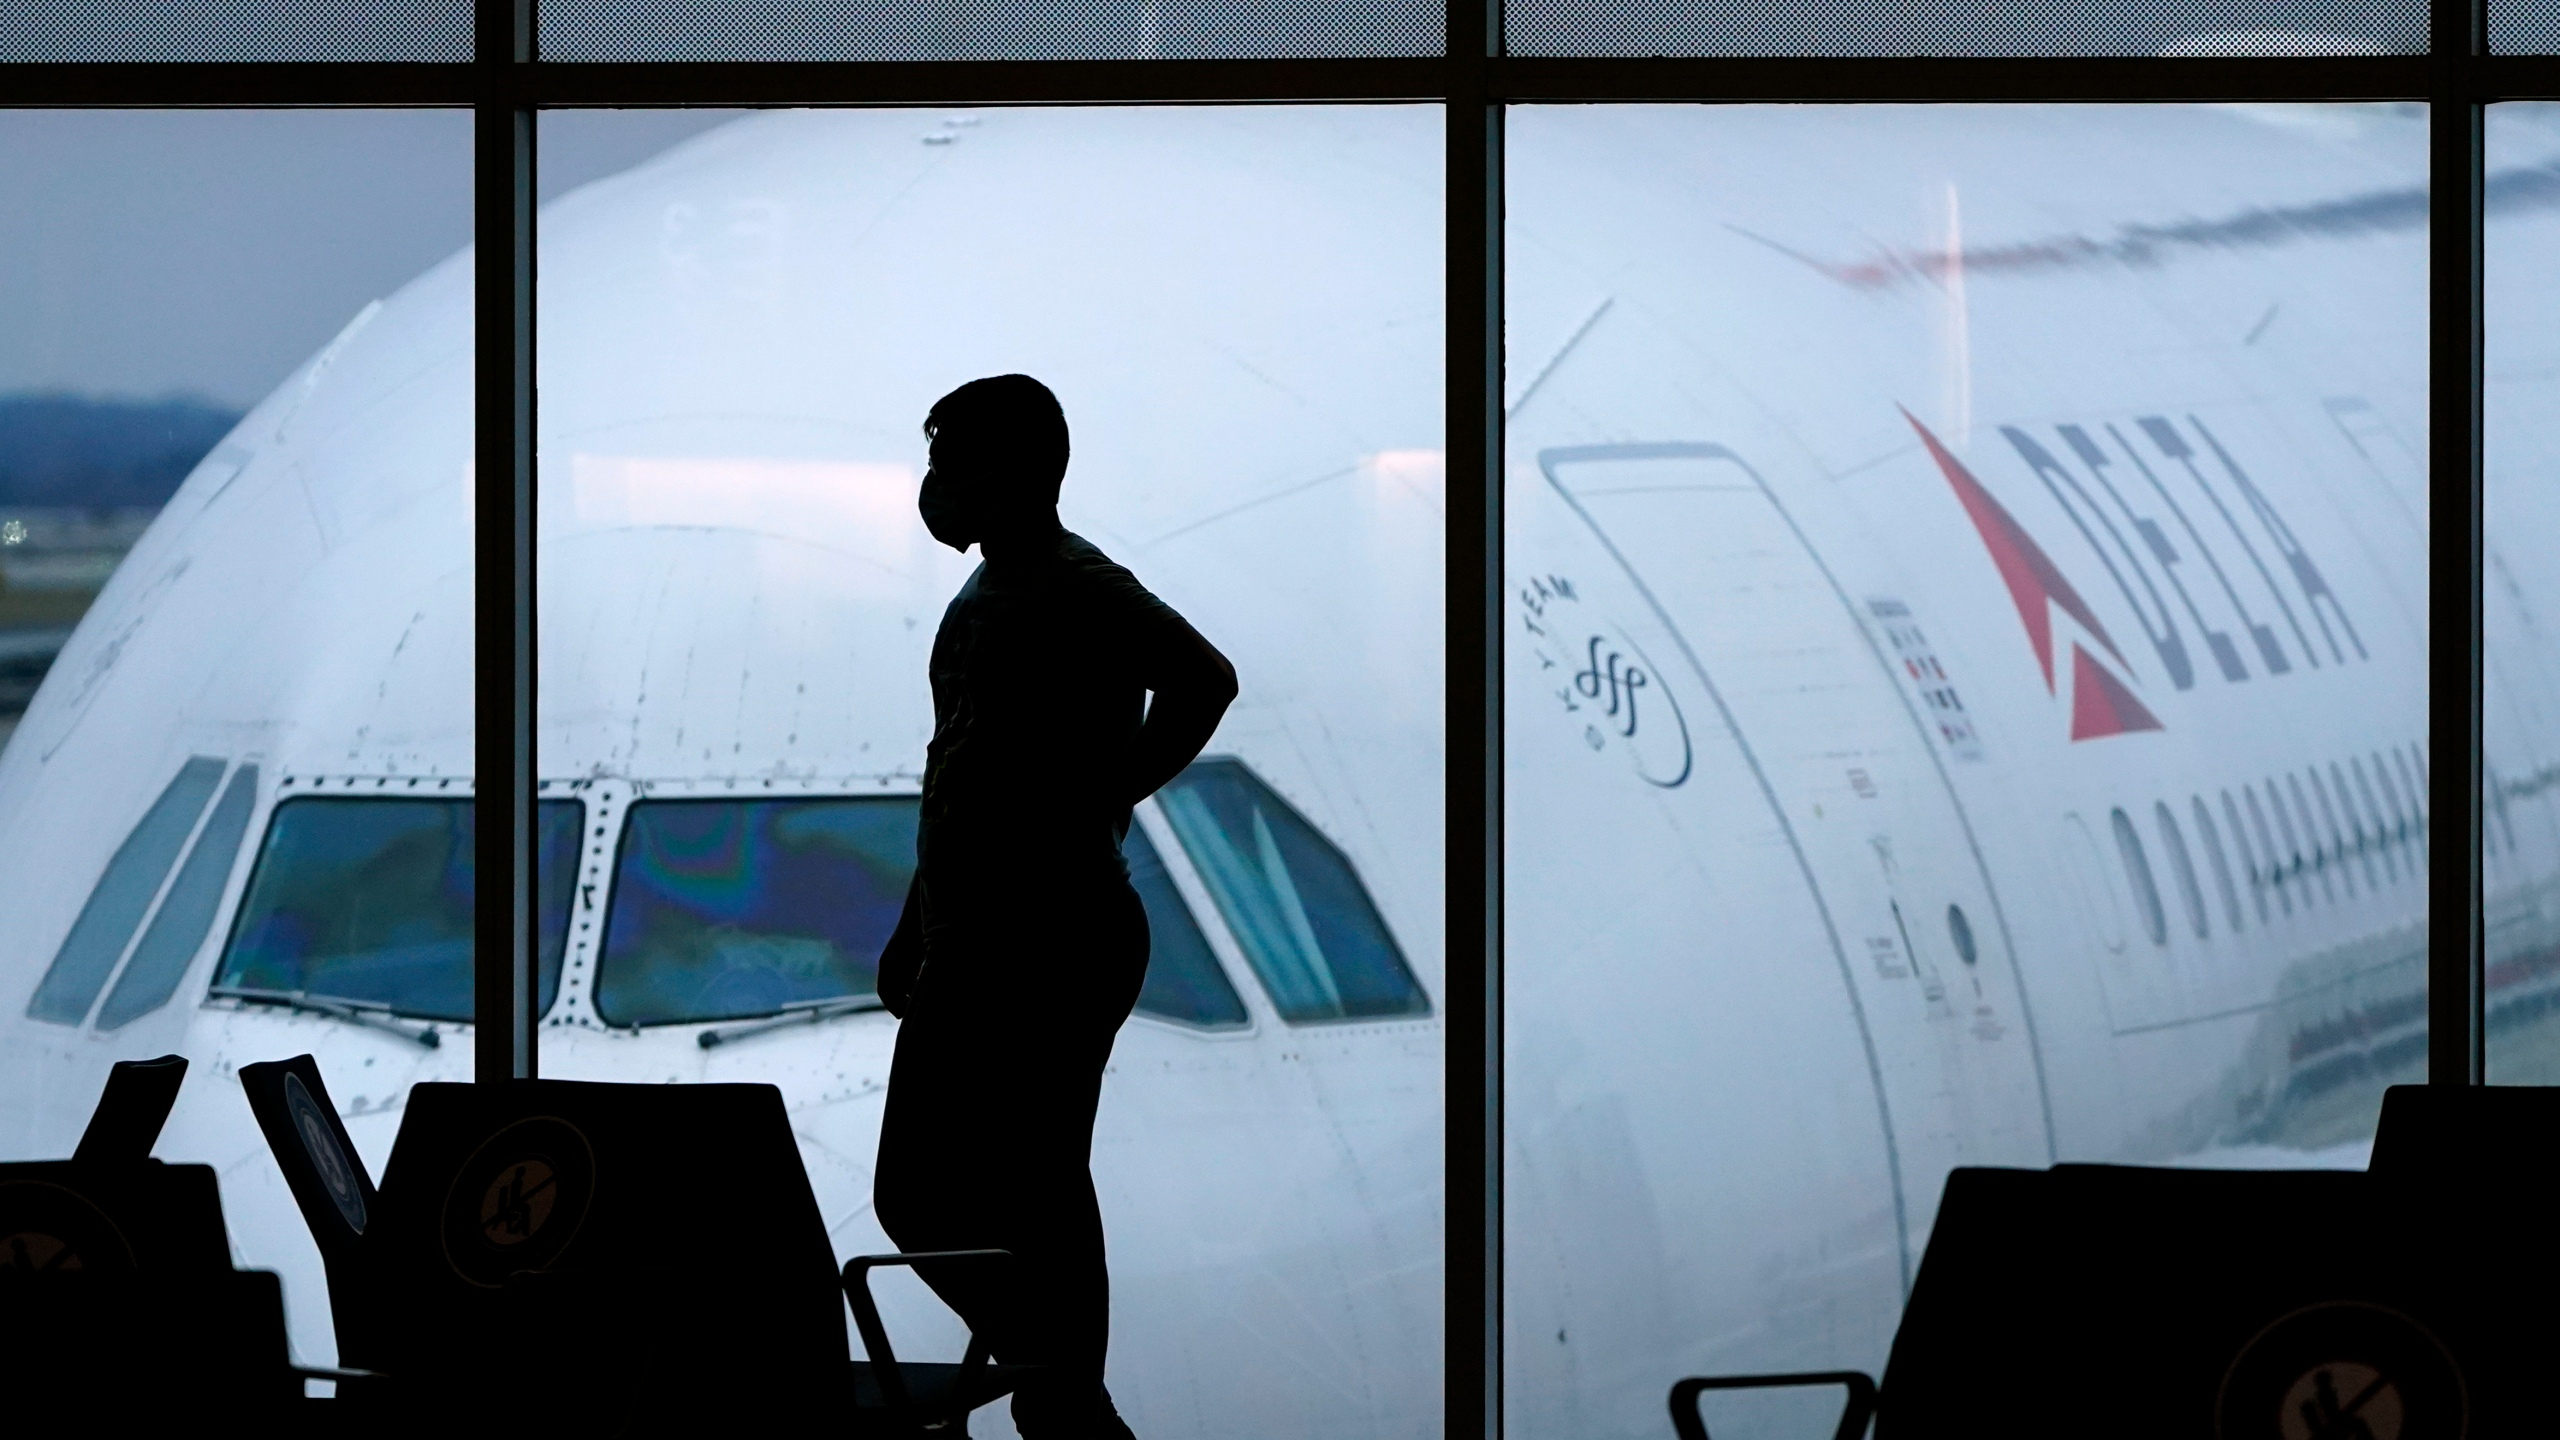 In this Feb. 18, 2021 file photo, a passenger wears a face mask to help prevent the spread of the new coronavirus as he waits for a Delta Airlines flight at Hartsfield-Jackson International Airport in Atlanta. (AP Photo/Charlie Riedel)